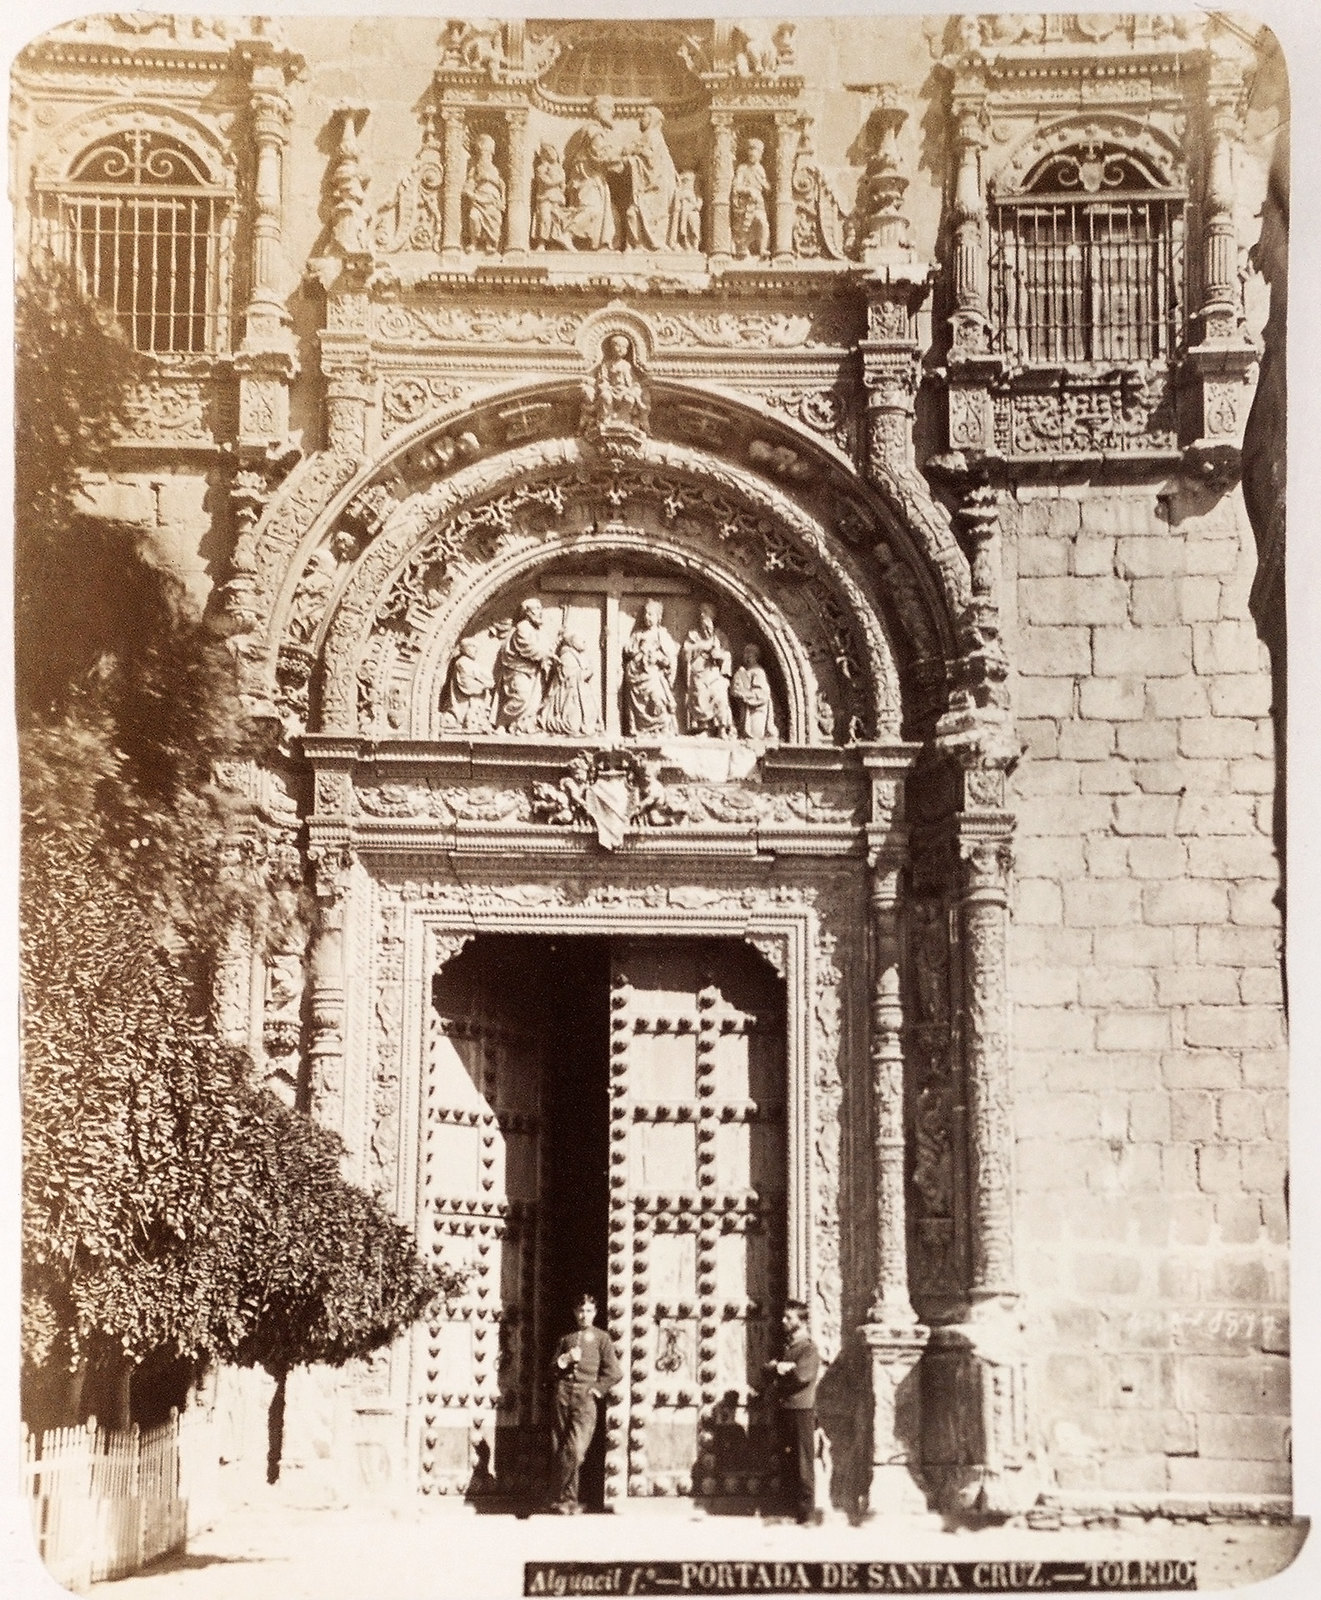 Hospital de Santa Cruz en Toledo hacia 1879. Álbum de la National Gallery con fotos de Casiano Alguacil.